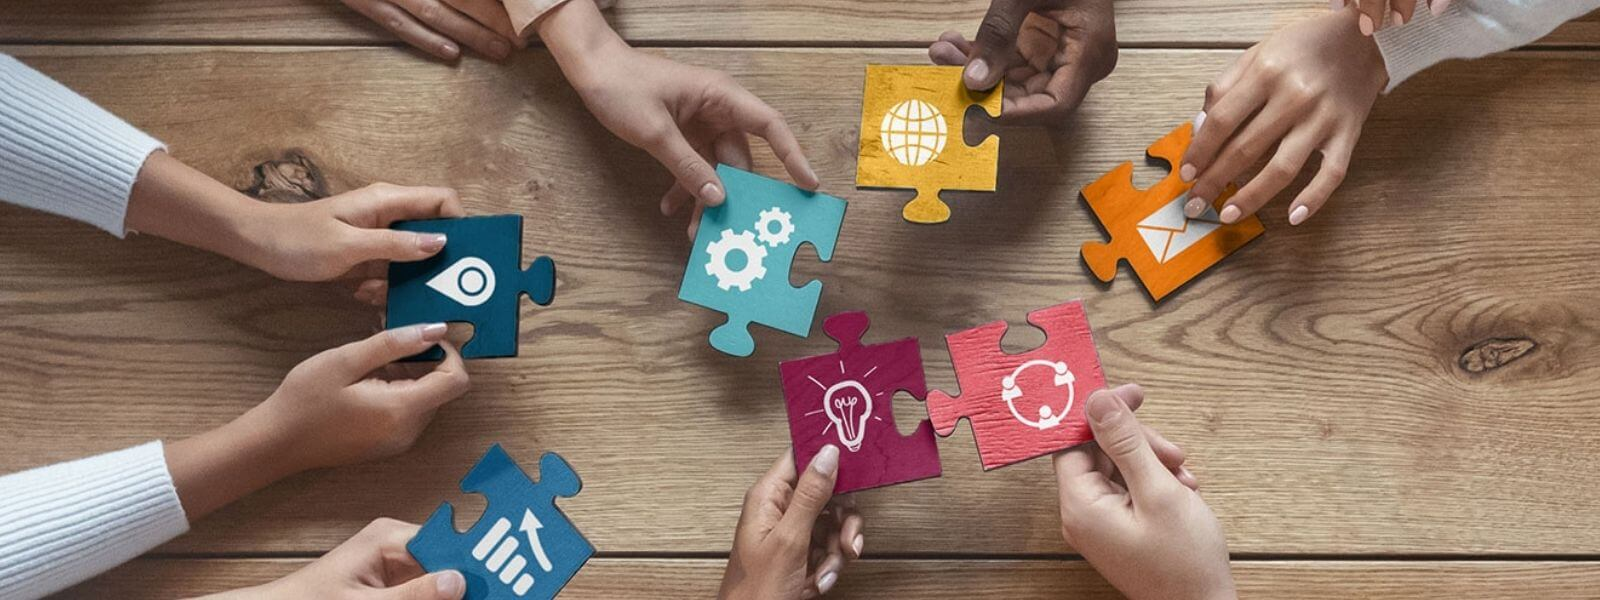 migrating pieces of a puzzle with pictures of communication elements on them such as gears or cogs for settings, location icon, a globe, and network icon.